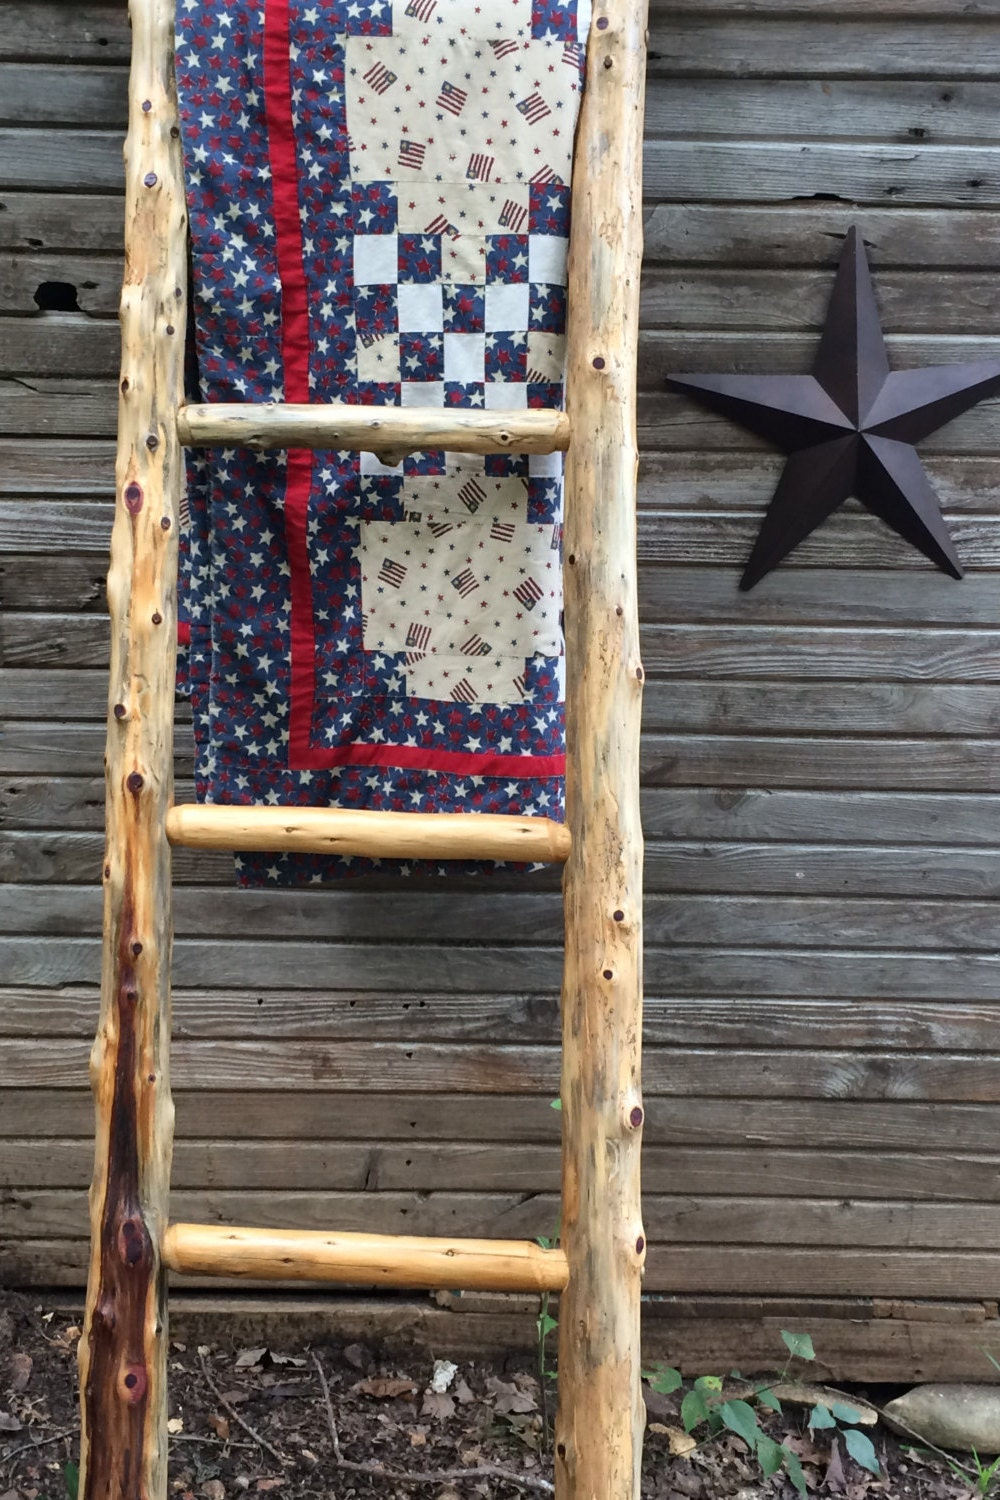 for organizing home quilt cleaning rack ladders blanket blankets s on decorative best throws display